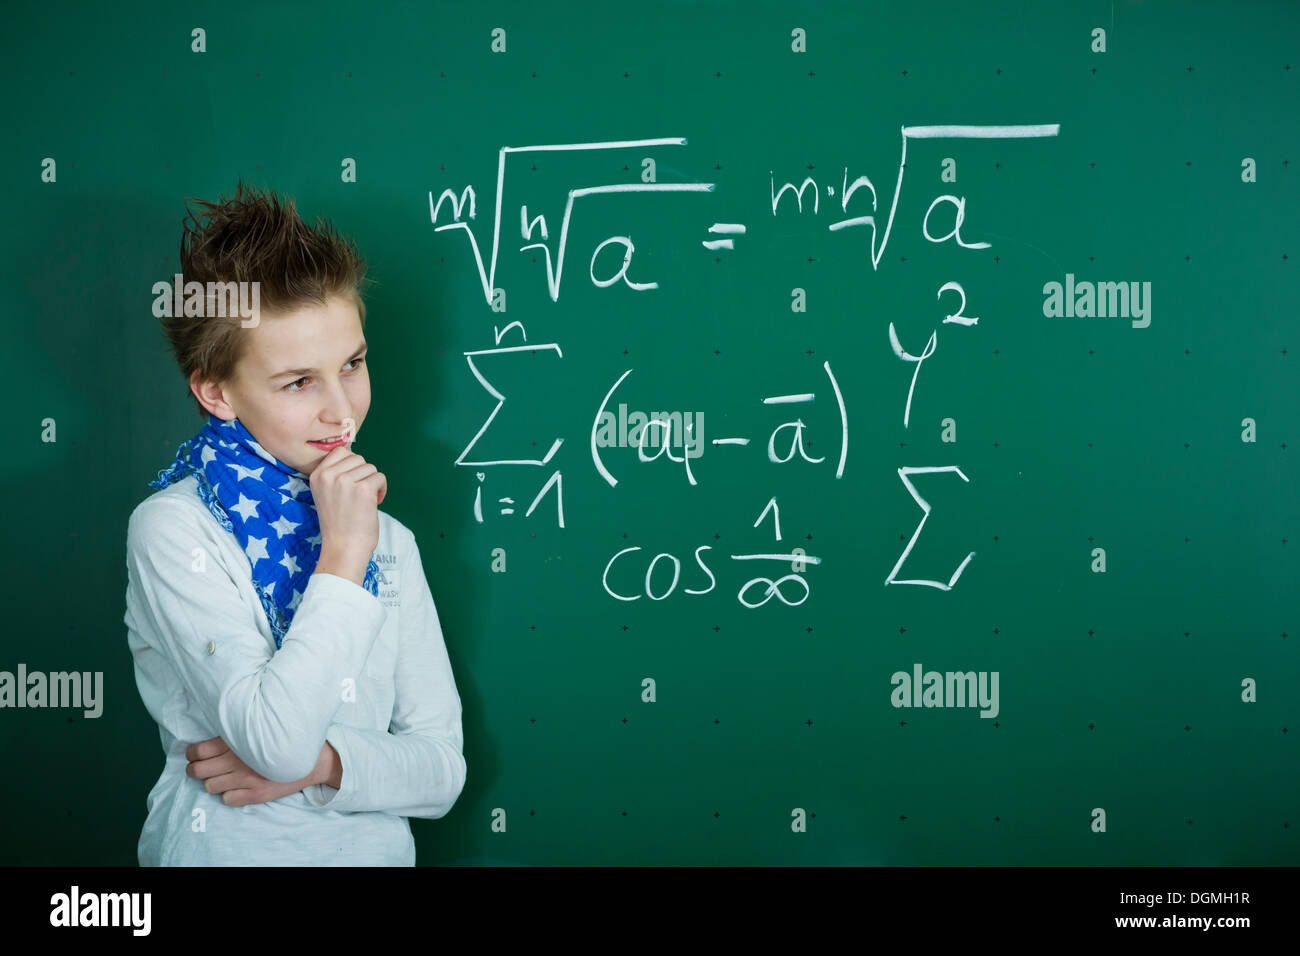 Schoolboy pondering a mathematical formula on a school blackboard, Germany - Stock Image